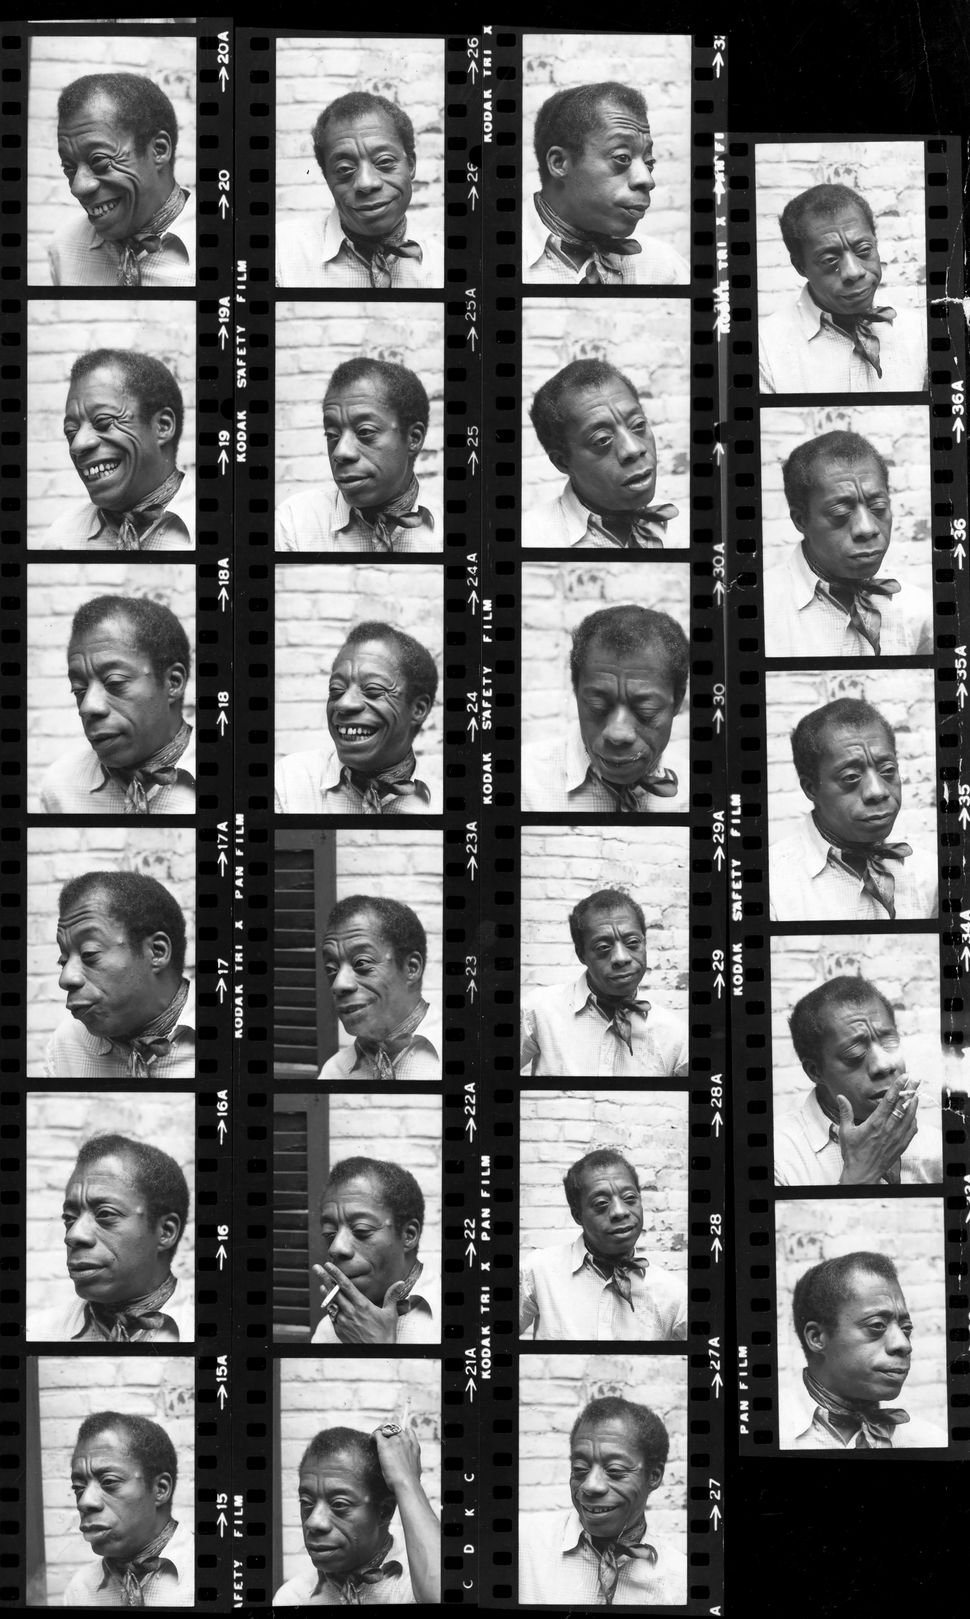 1972: James Baldwin posed for photographs in an apartment on the Upper West Side of Manhattan. Frame 19 was the image that ed